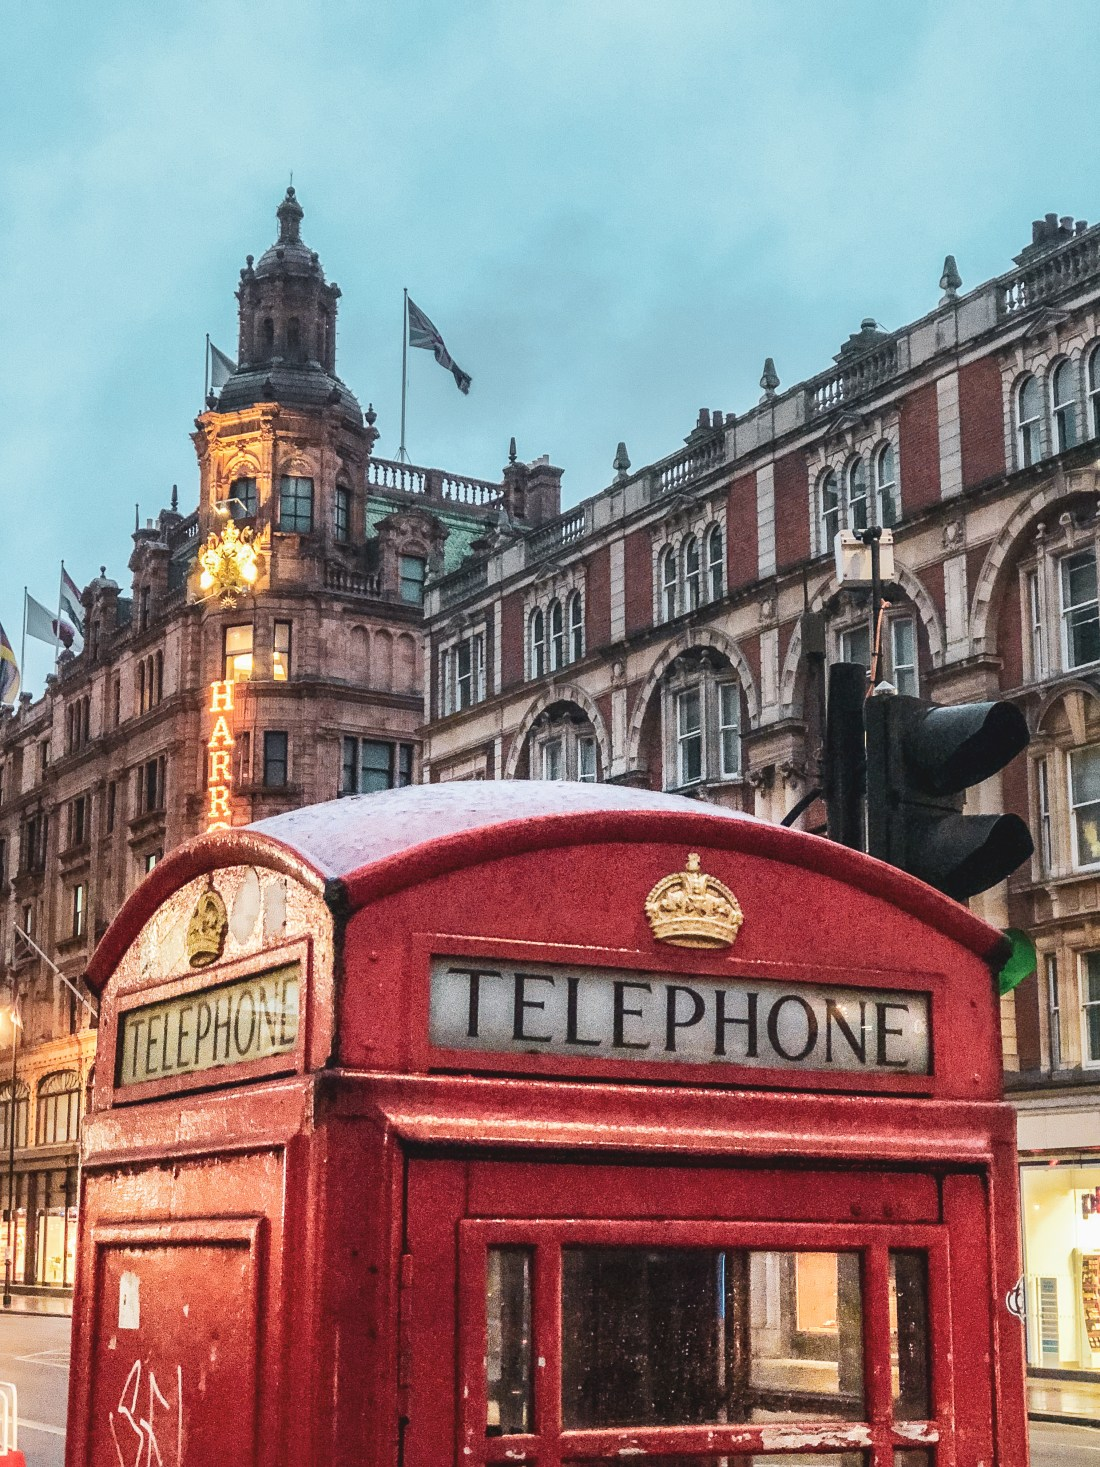 Famous red phone booth in London near Harrods